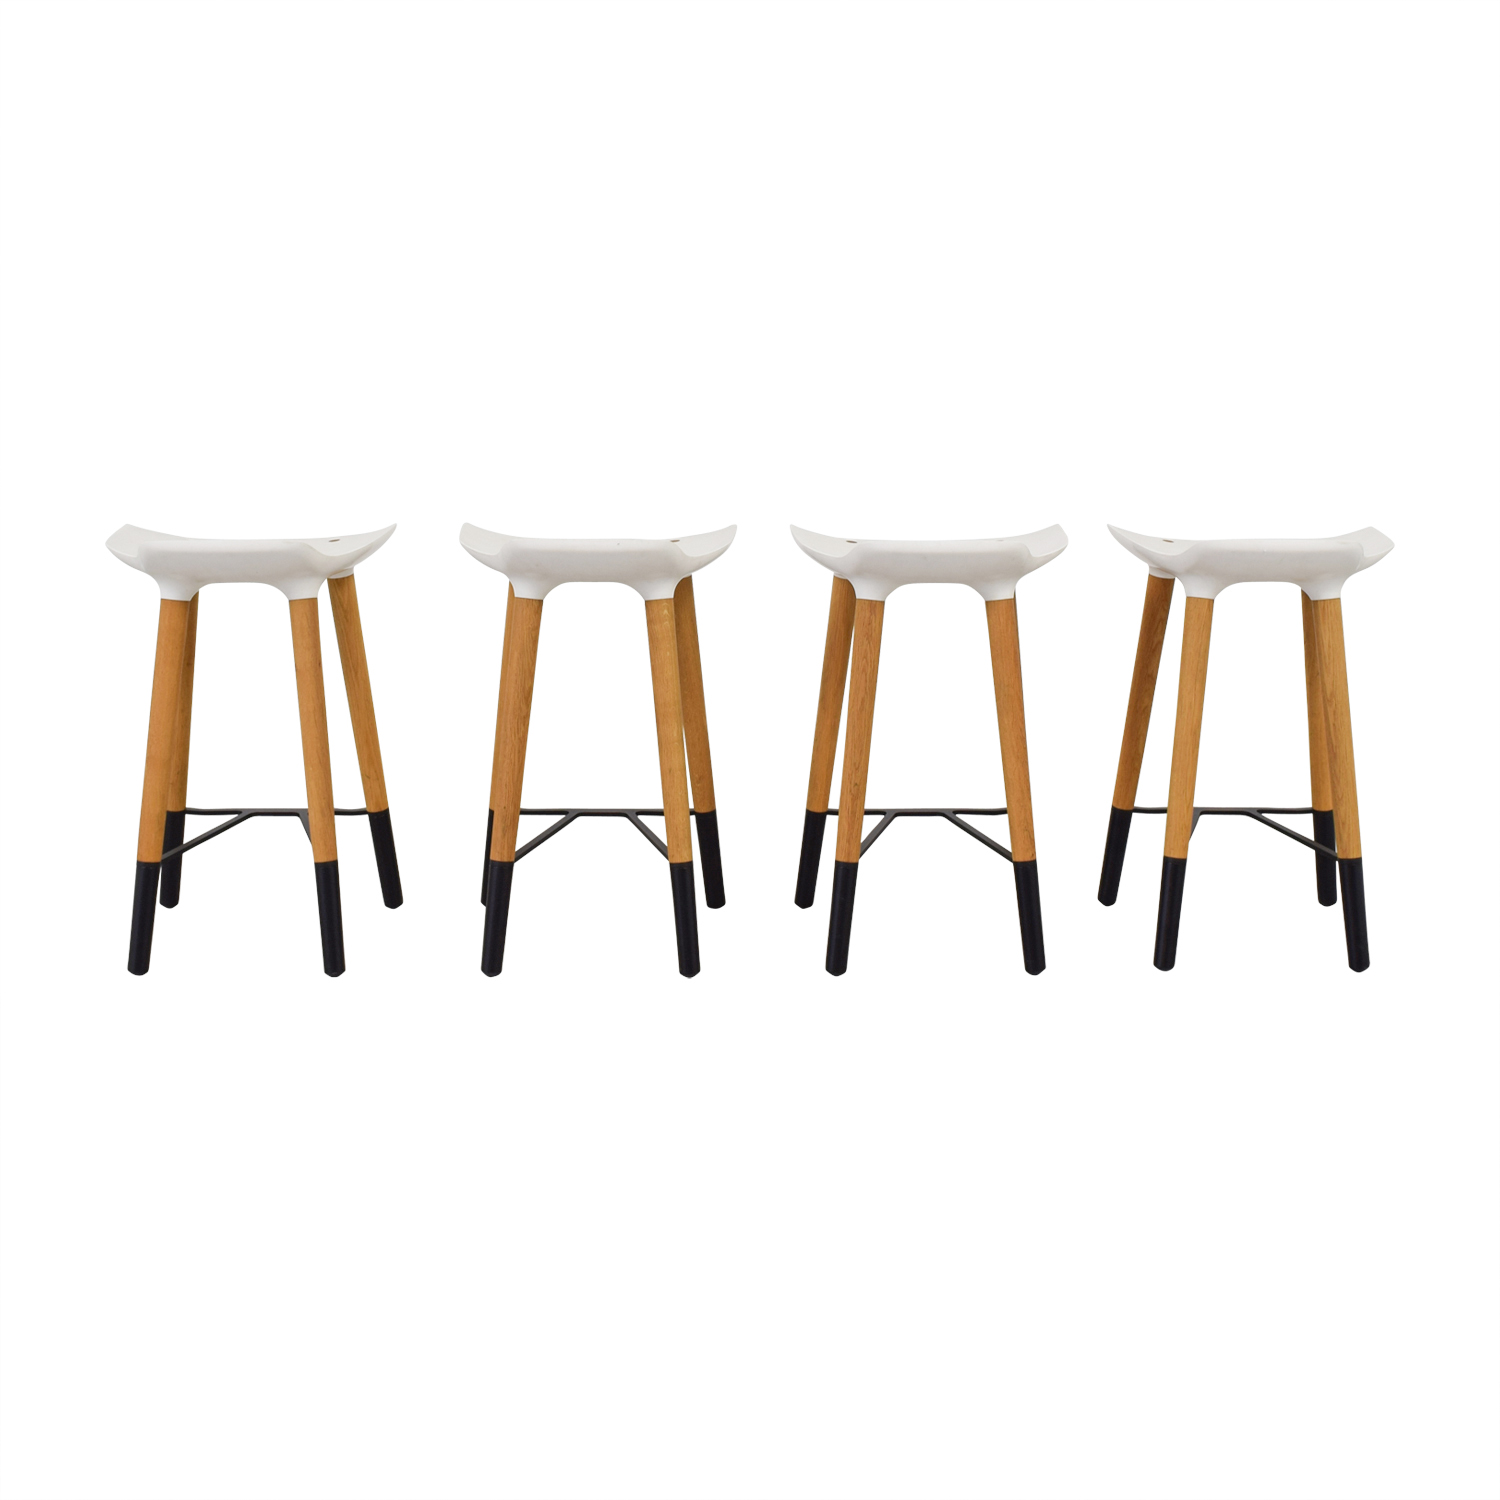 shop Quinze and Milan Pilot White Bar Stools Quinze and Milan Stools